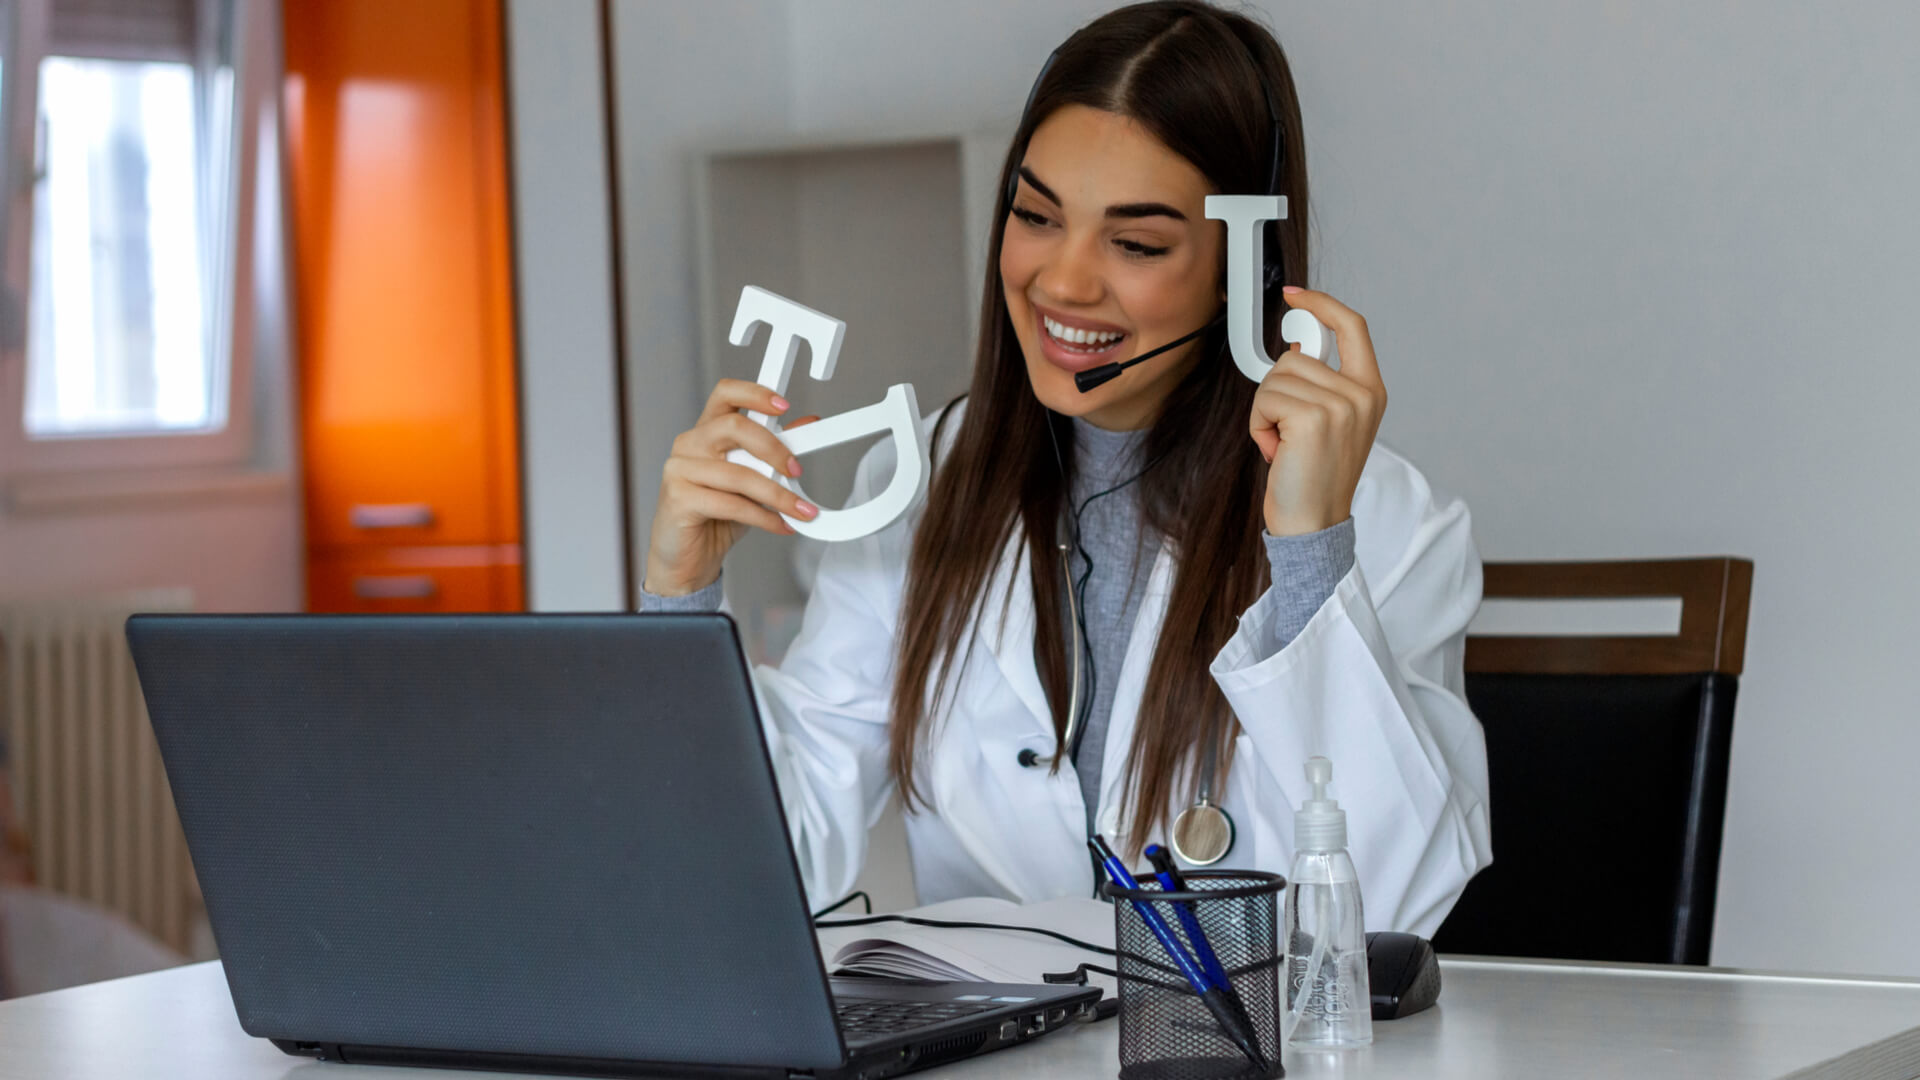 Teletherapy for Speech Therapists